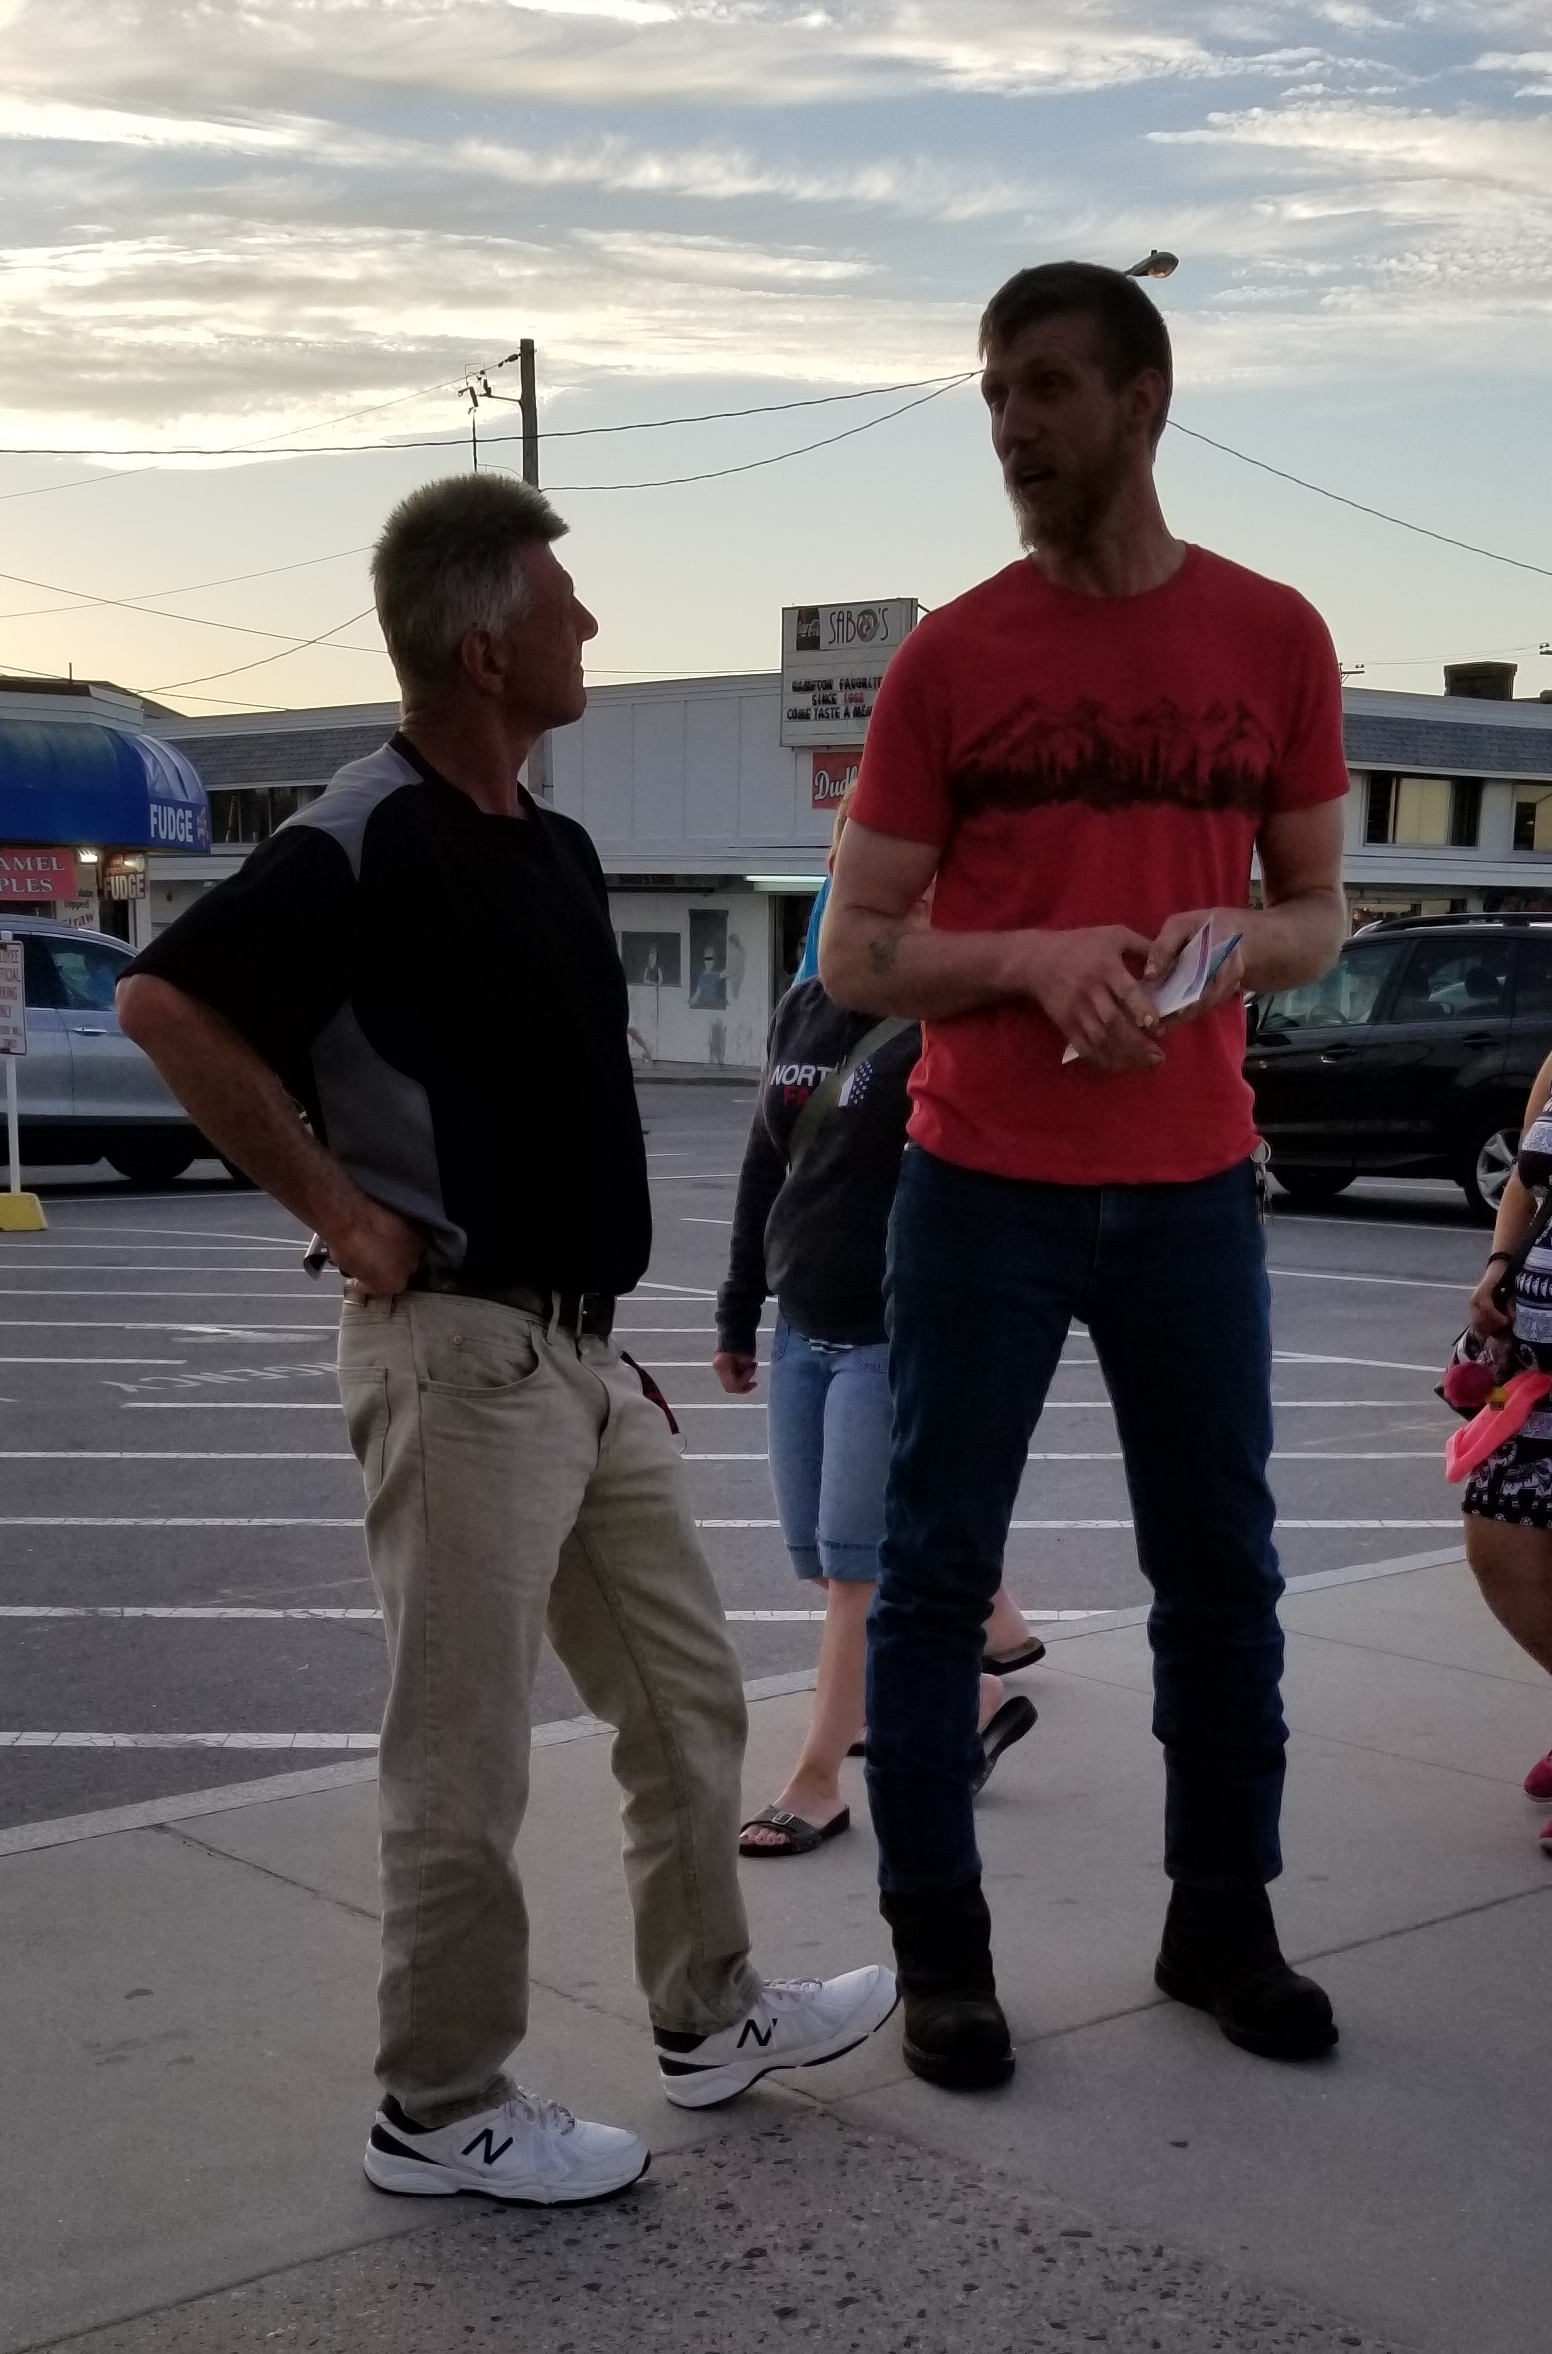 This is Lucas, another one of our volunteers (the tallest one we have!) He does a great job patiently explaining the gospel message to people.